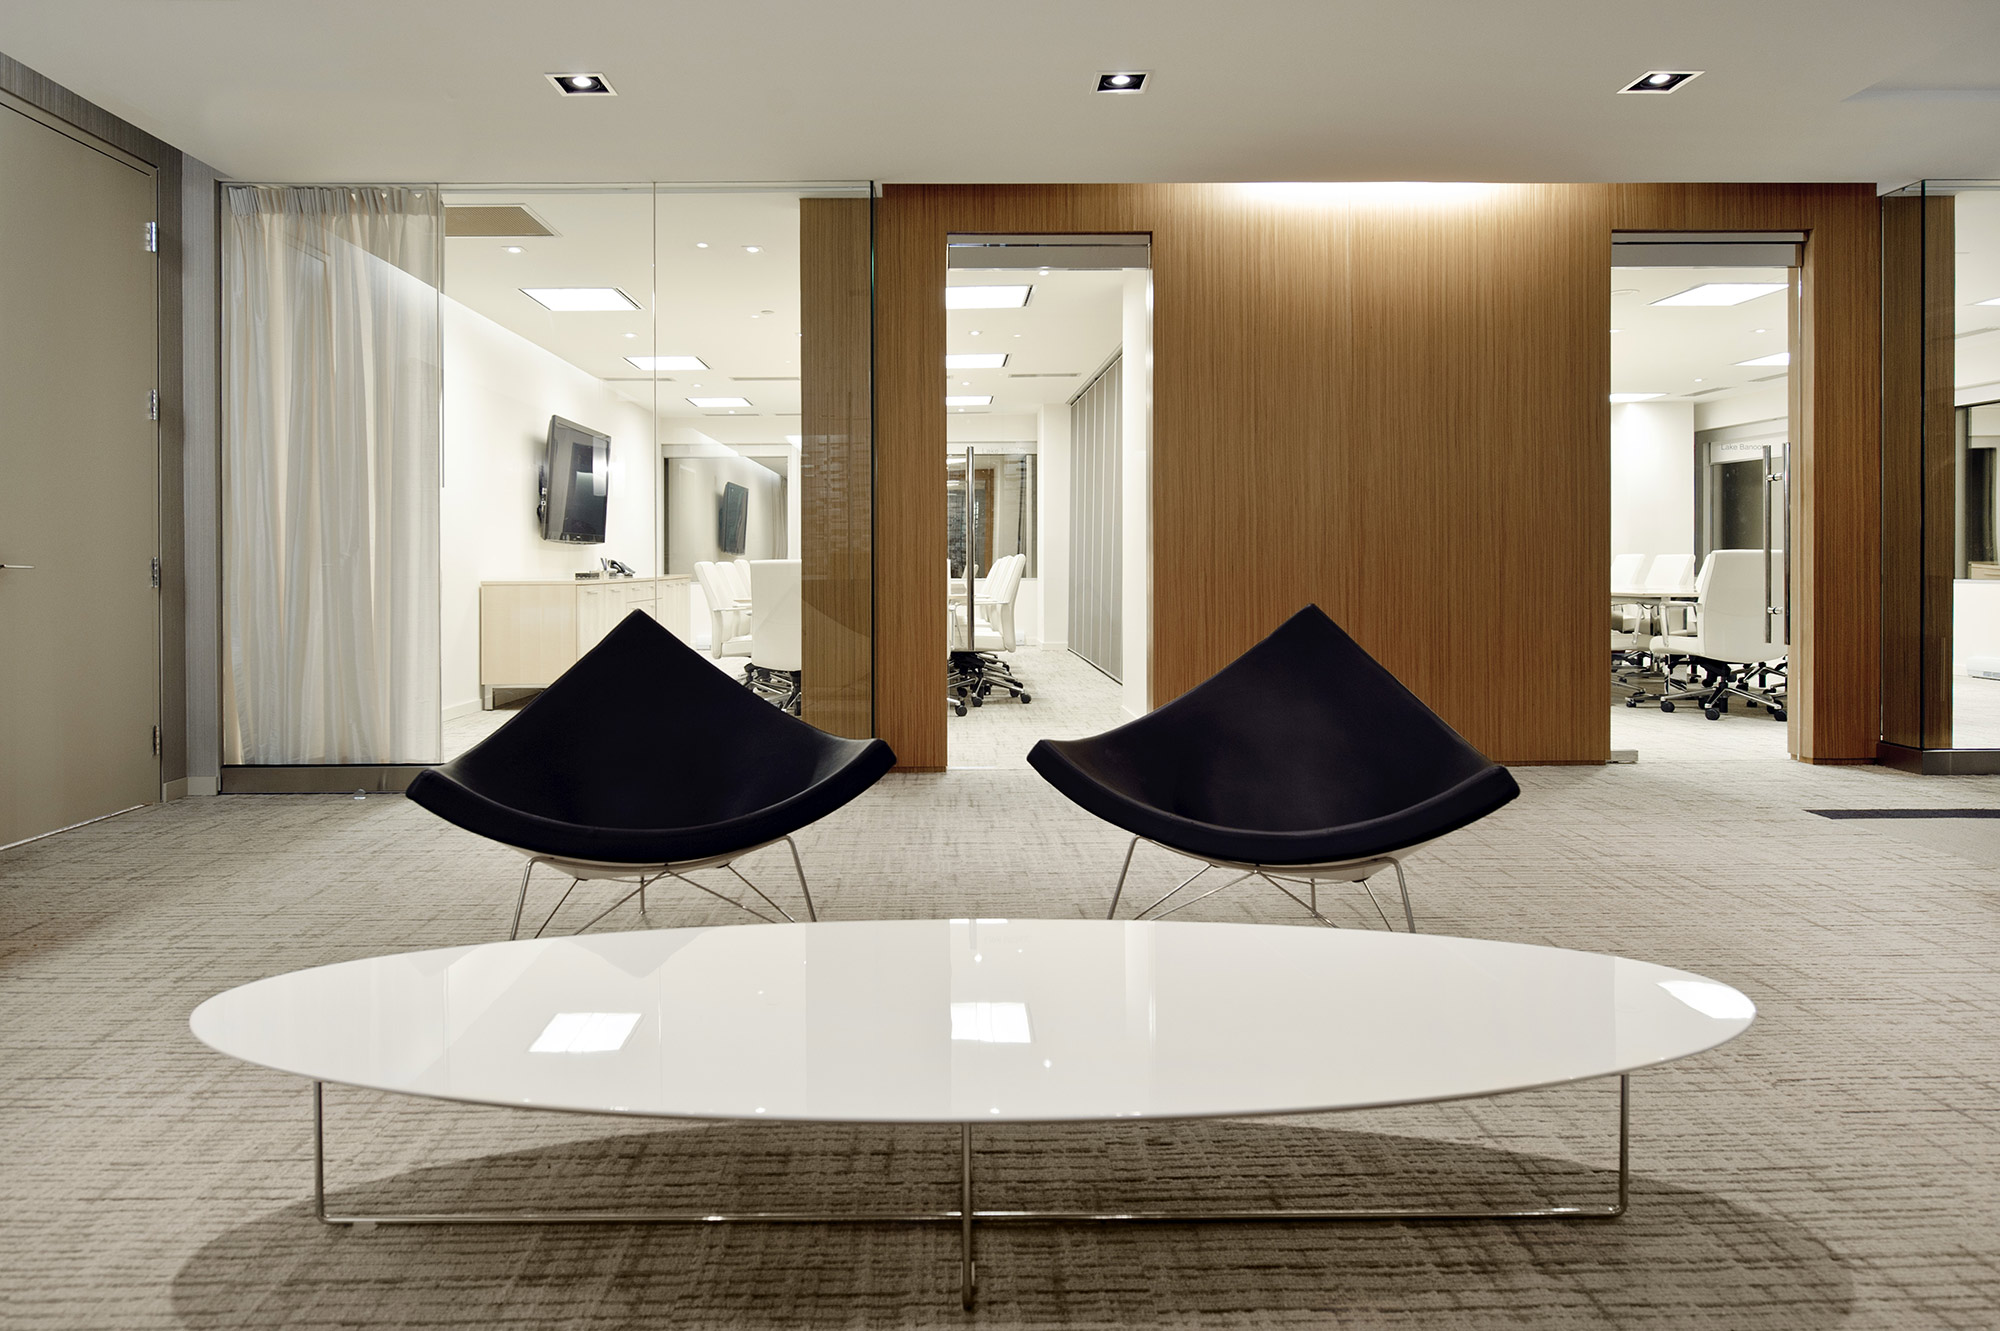 interior-design-legal-office-black-chairs.jpg